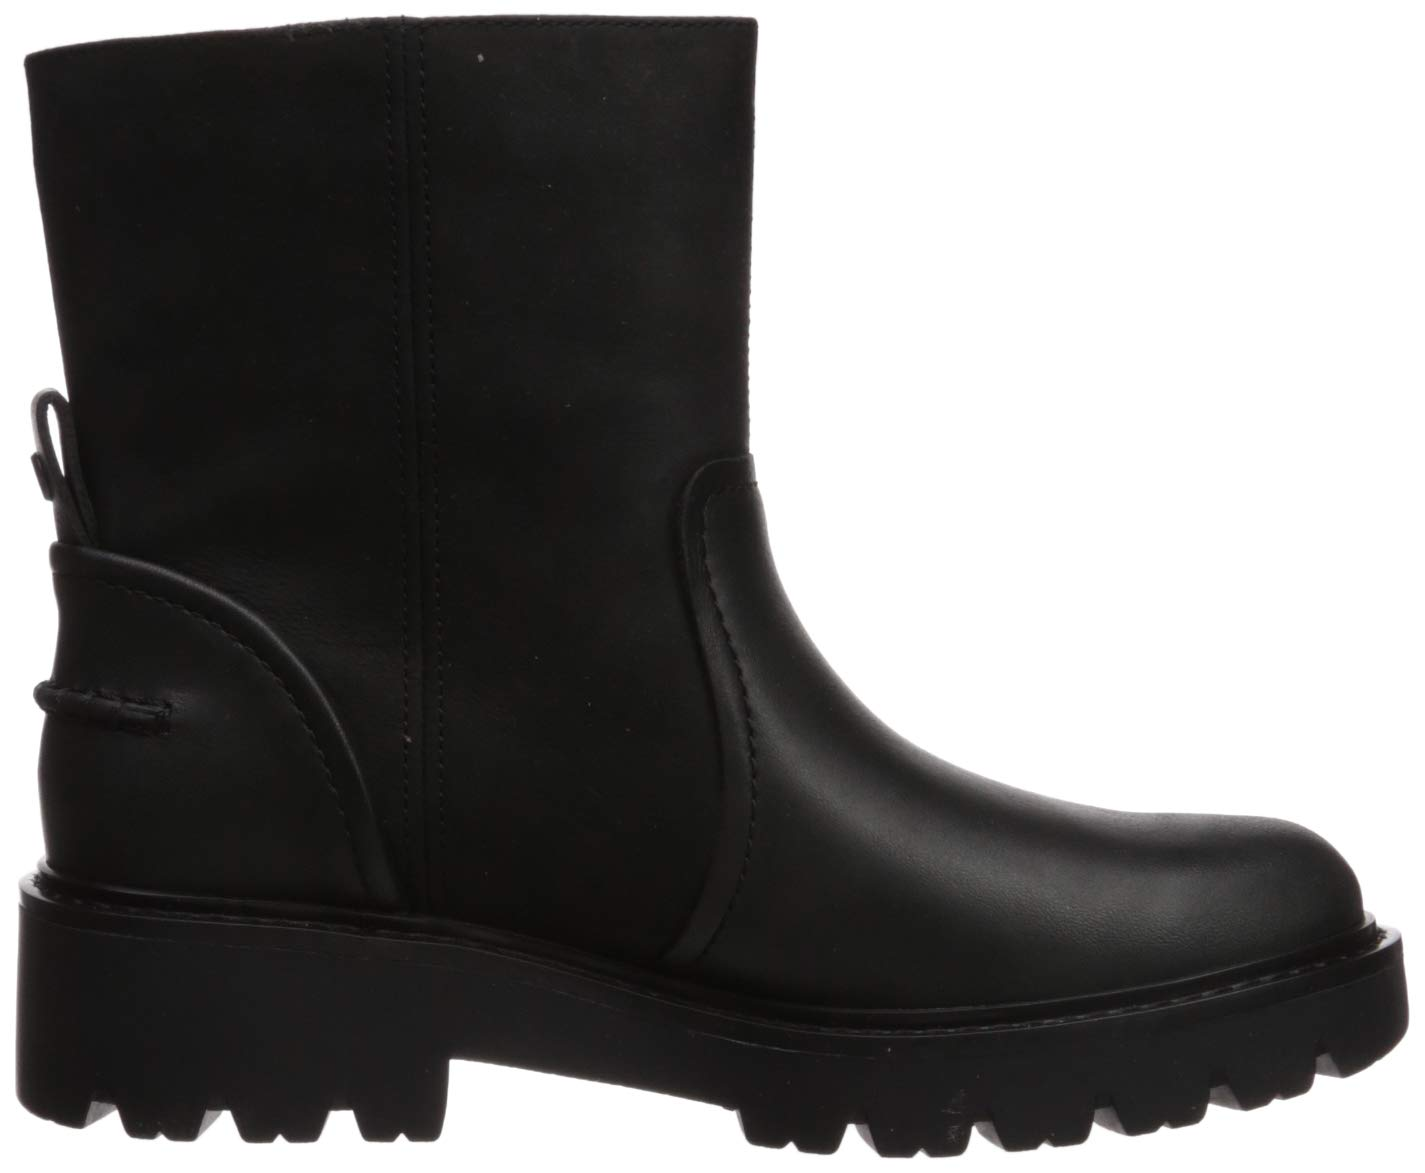 UGG Women's Polk Combat Boot, Black, 7.5 M US 7